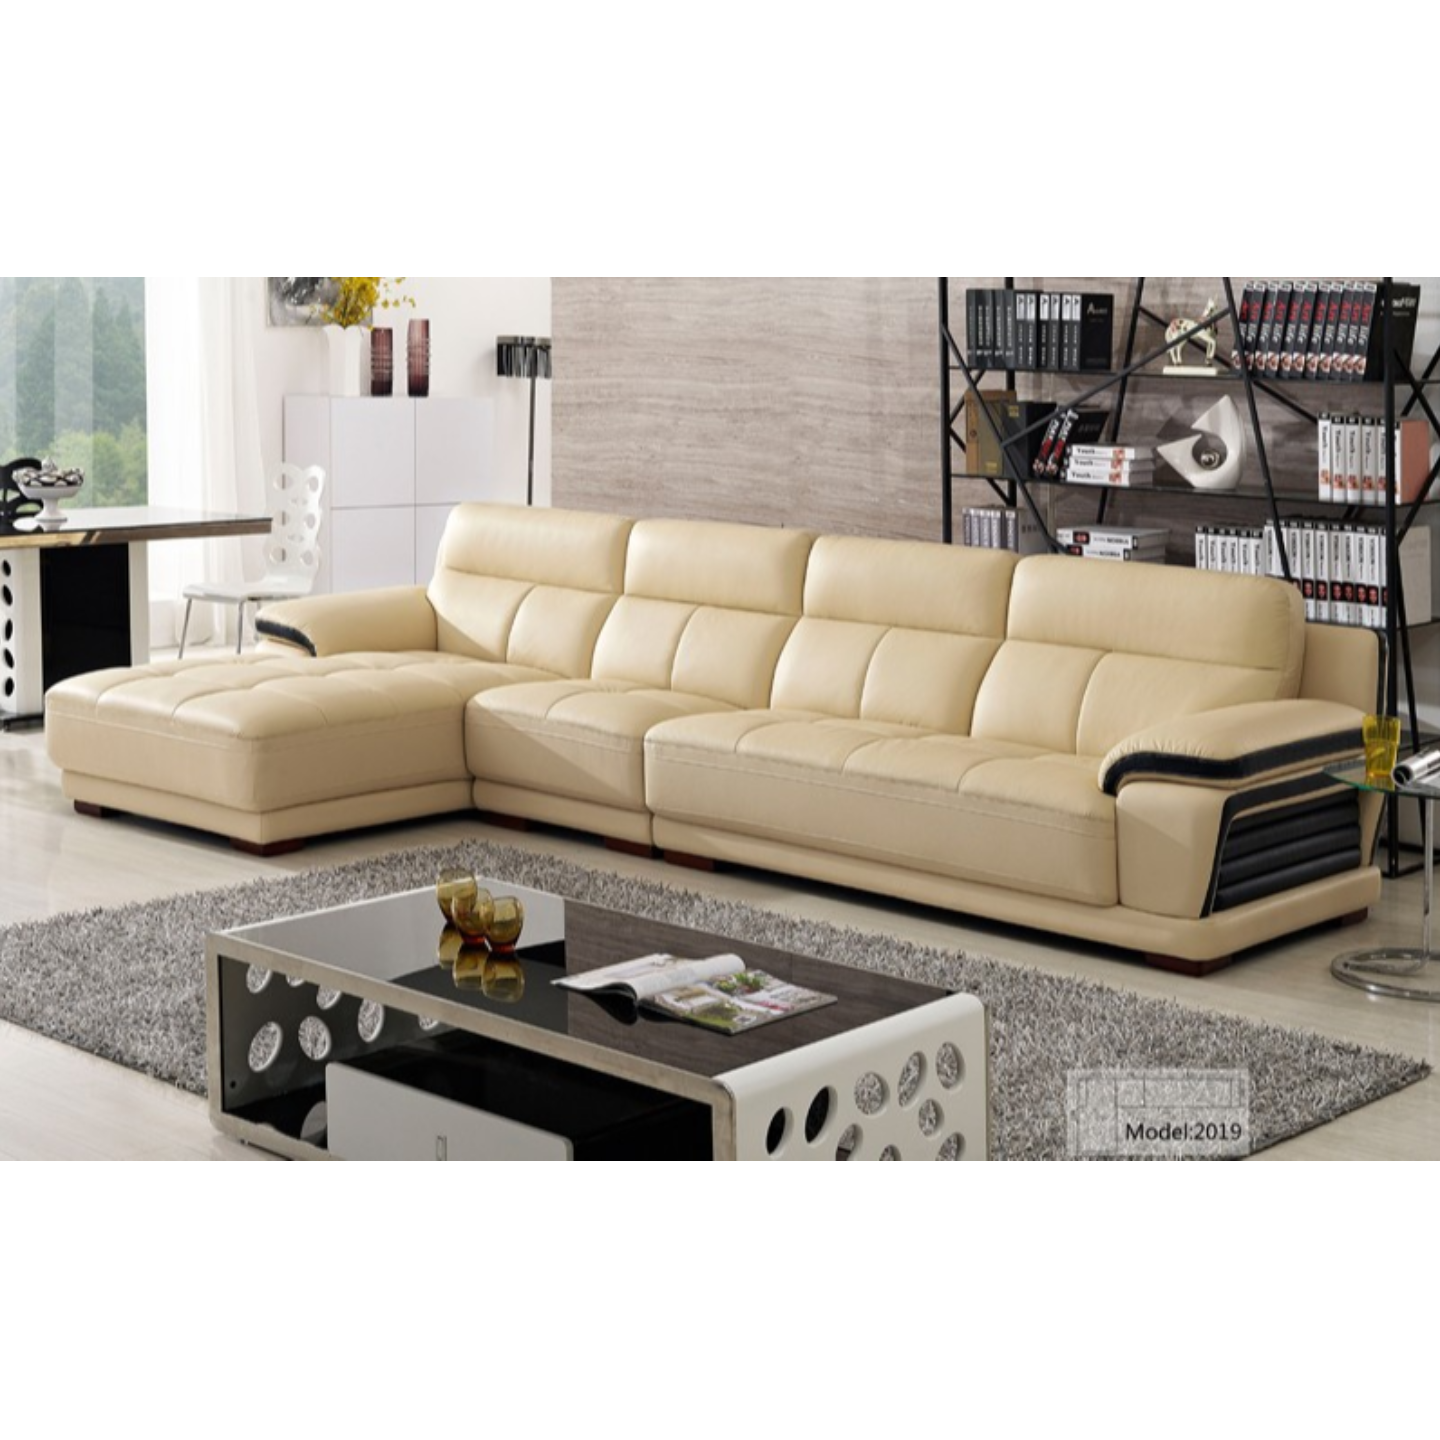 Boston Lounger Sofa (FC57)